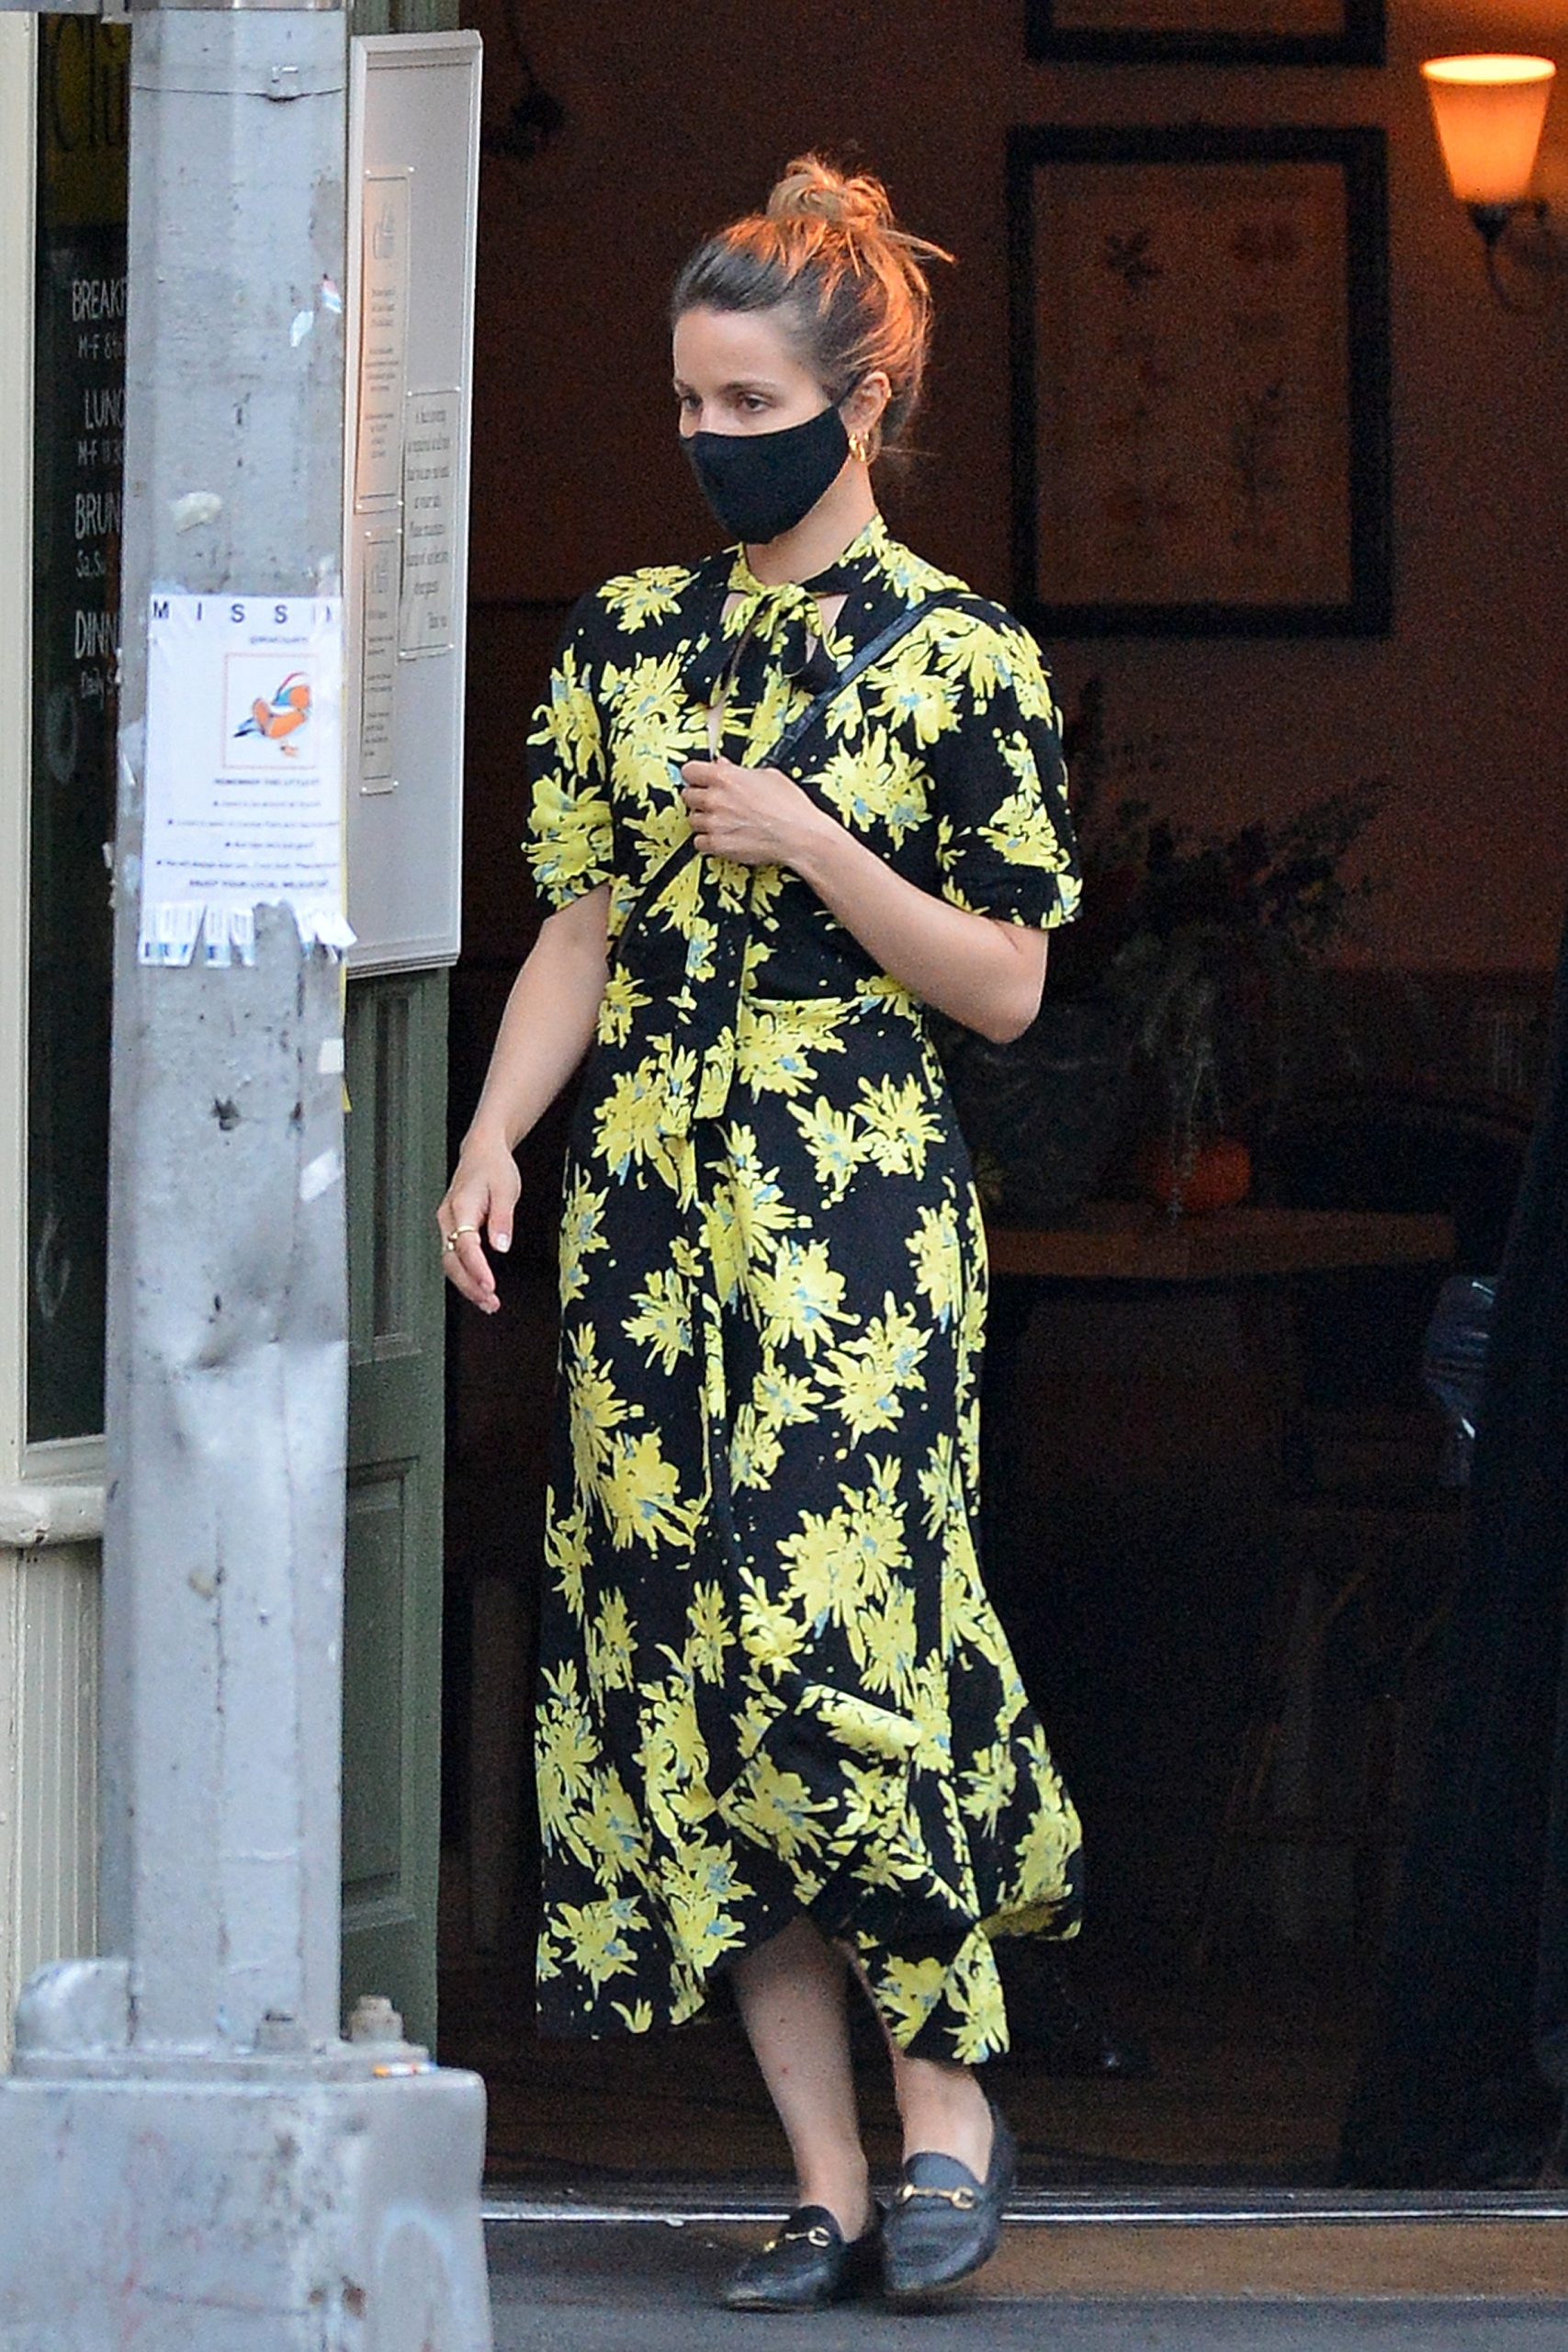 dianna-agron-in-proenza-schouler-dress-out-in-new-york-city